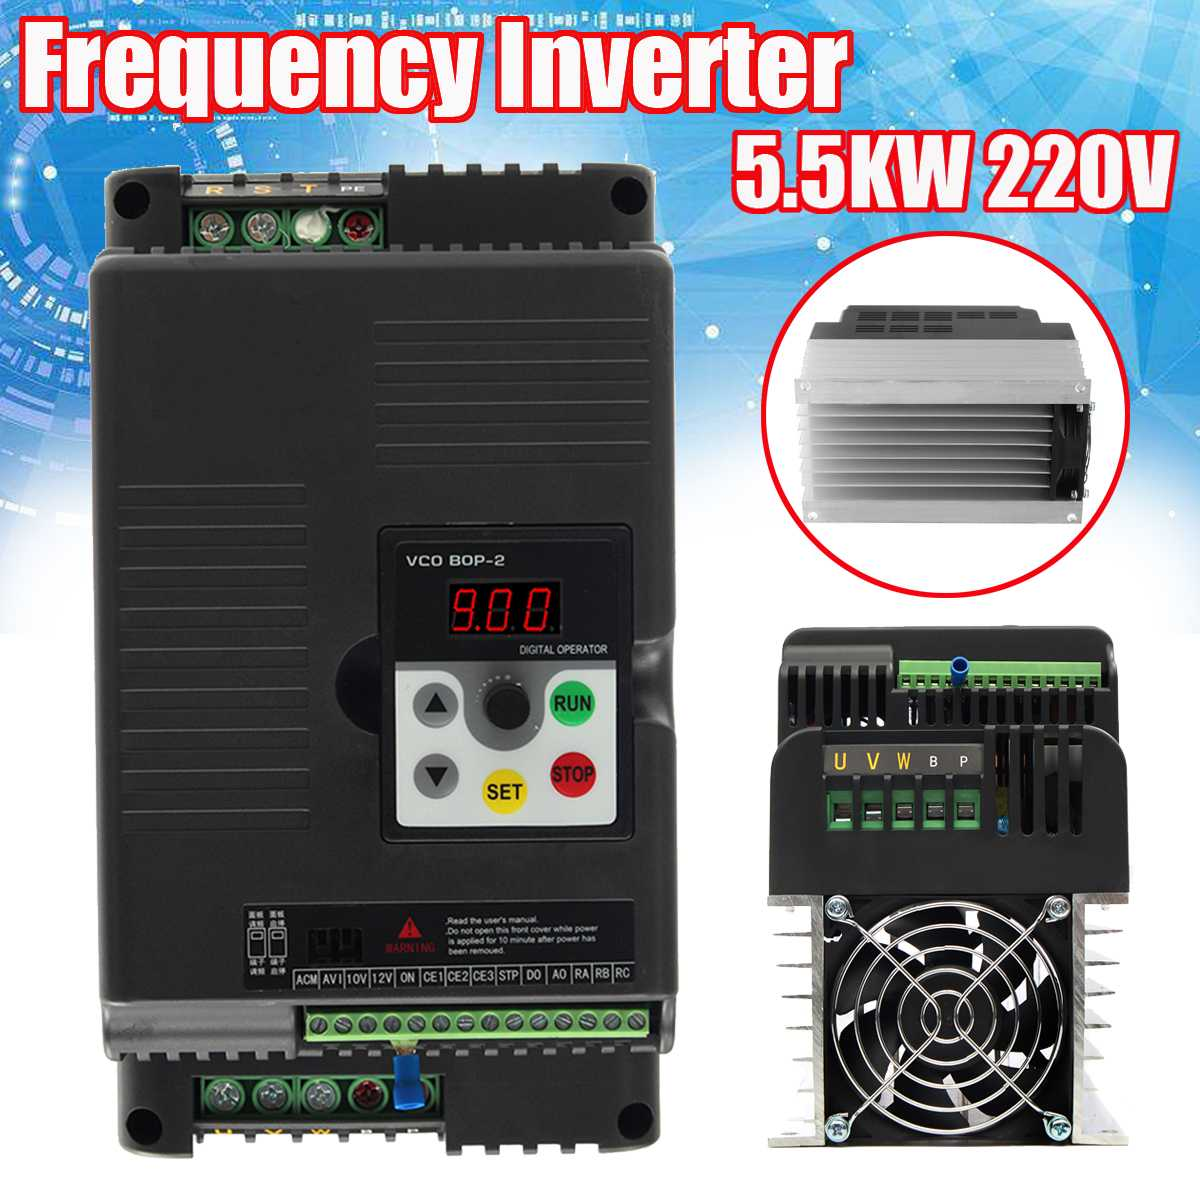 5.5Kw 220V AC Frequency Inverter & Converter Output 3 Phase AC Motor Water Pump Controller Frequency Converter5.5Kw 220V AC Frequency Inverter & Converter Output 3 Phase AC Motor Water Pump Controller Frequency Converter